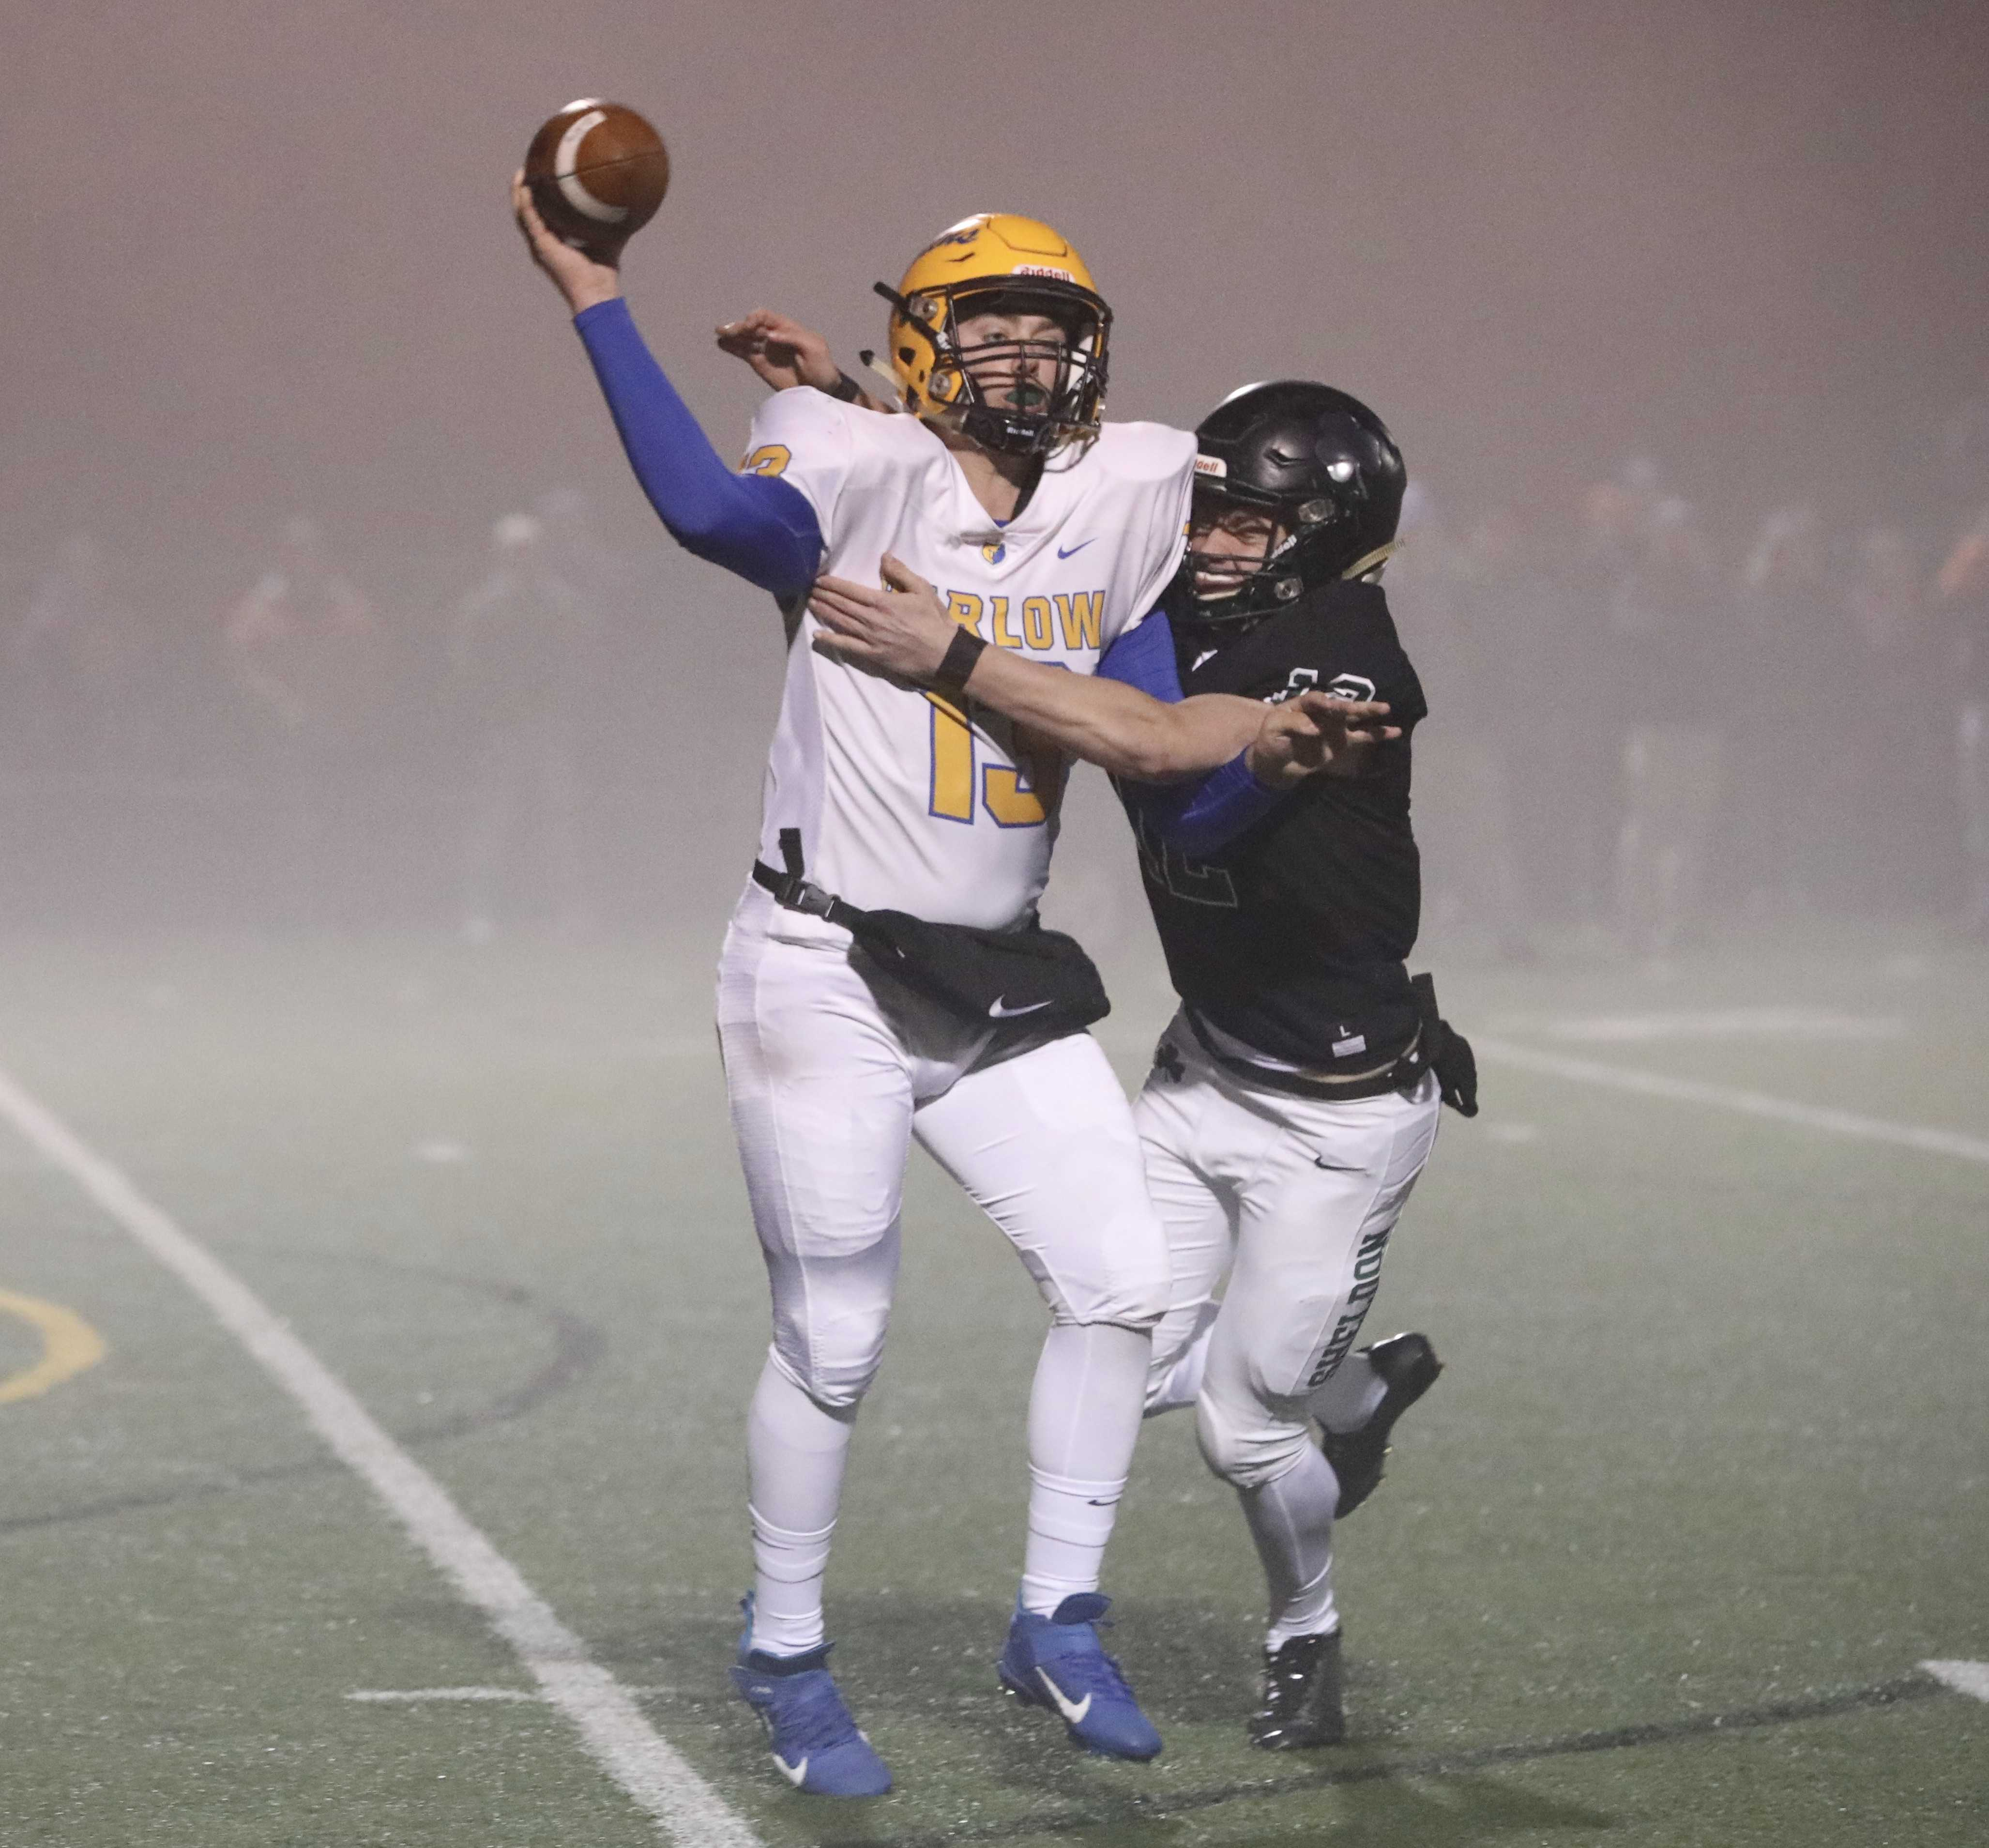 Barlow quarterback Jaren Hunter gets a pass off with Sheldon's Rhys Messner hanging onto him. (Photo by Norm Maves Jr.)